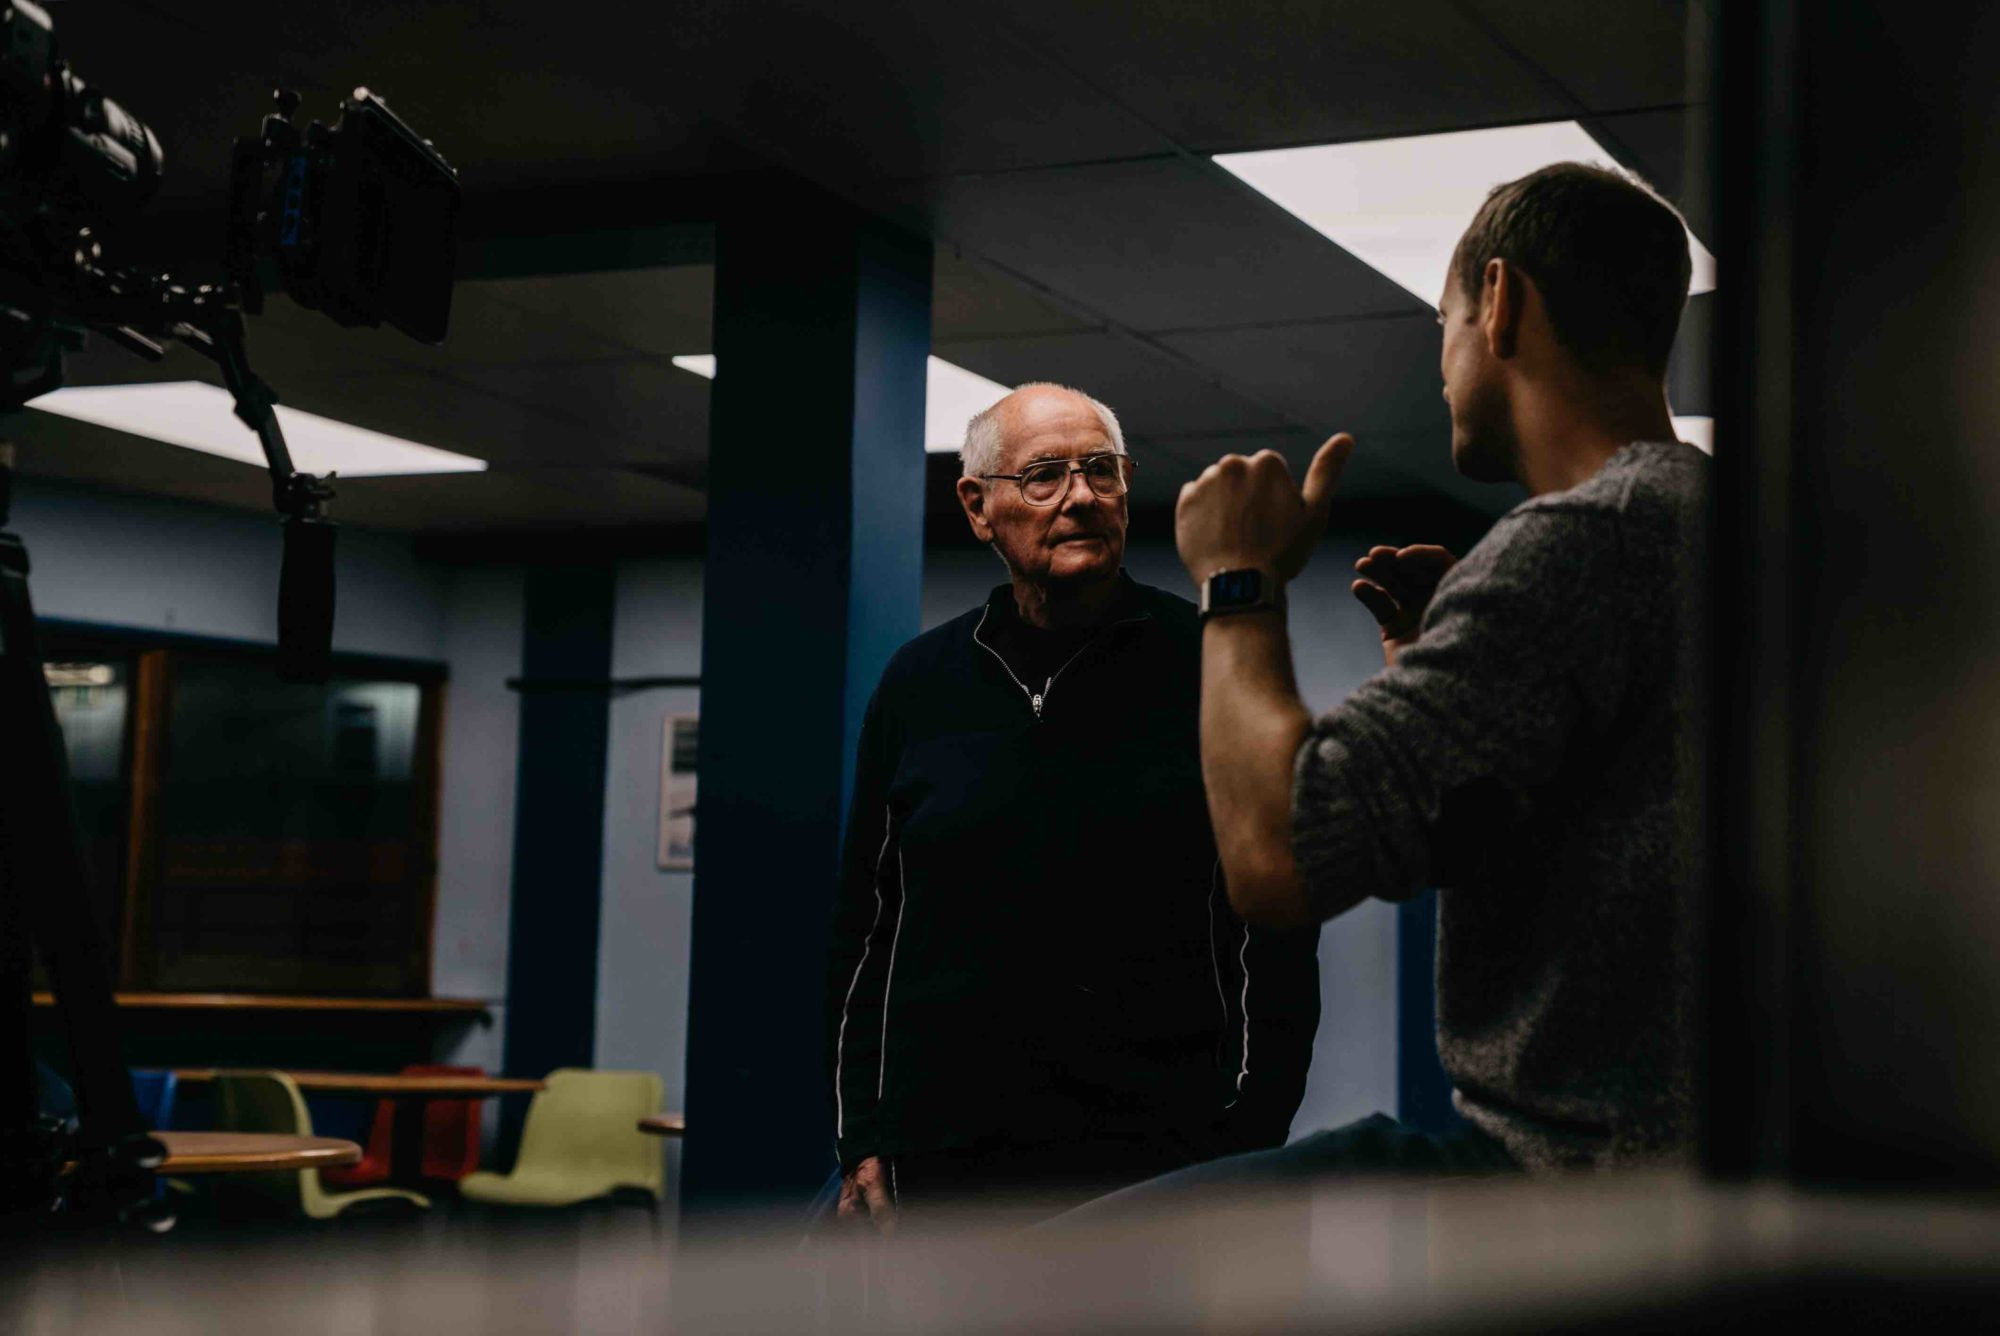 85 year old figure skater stars in music video